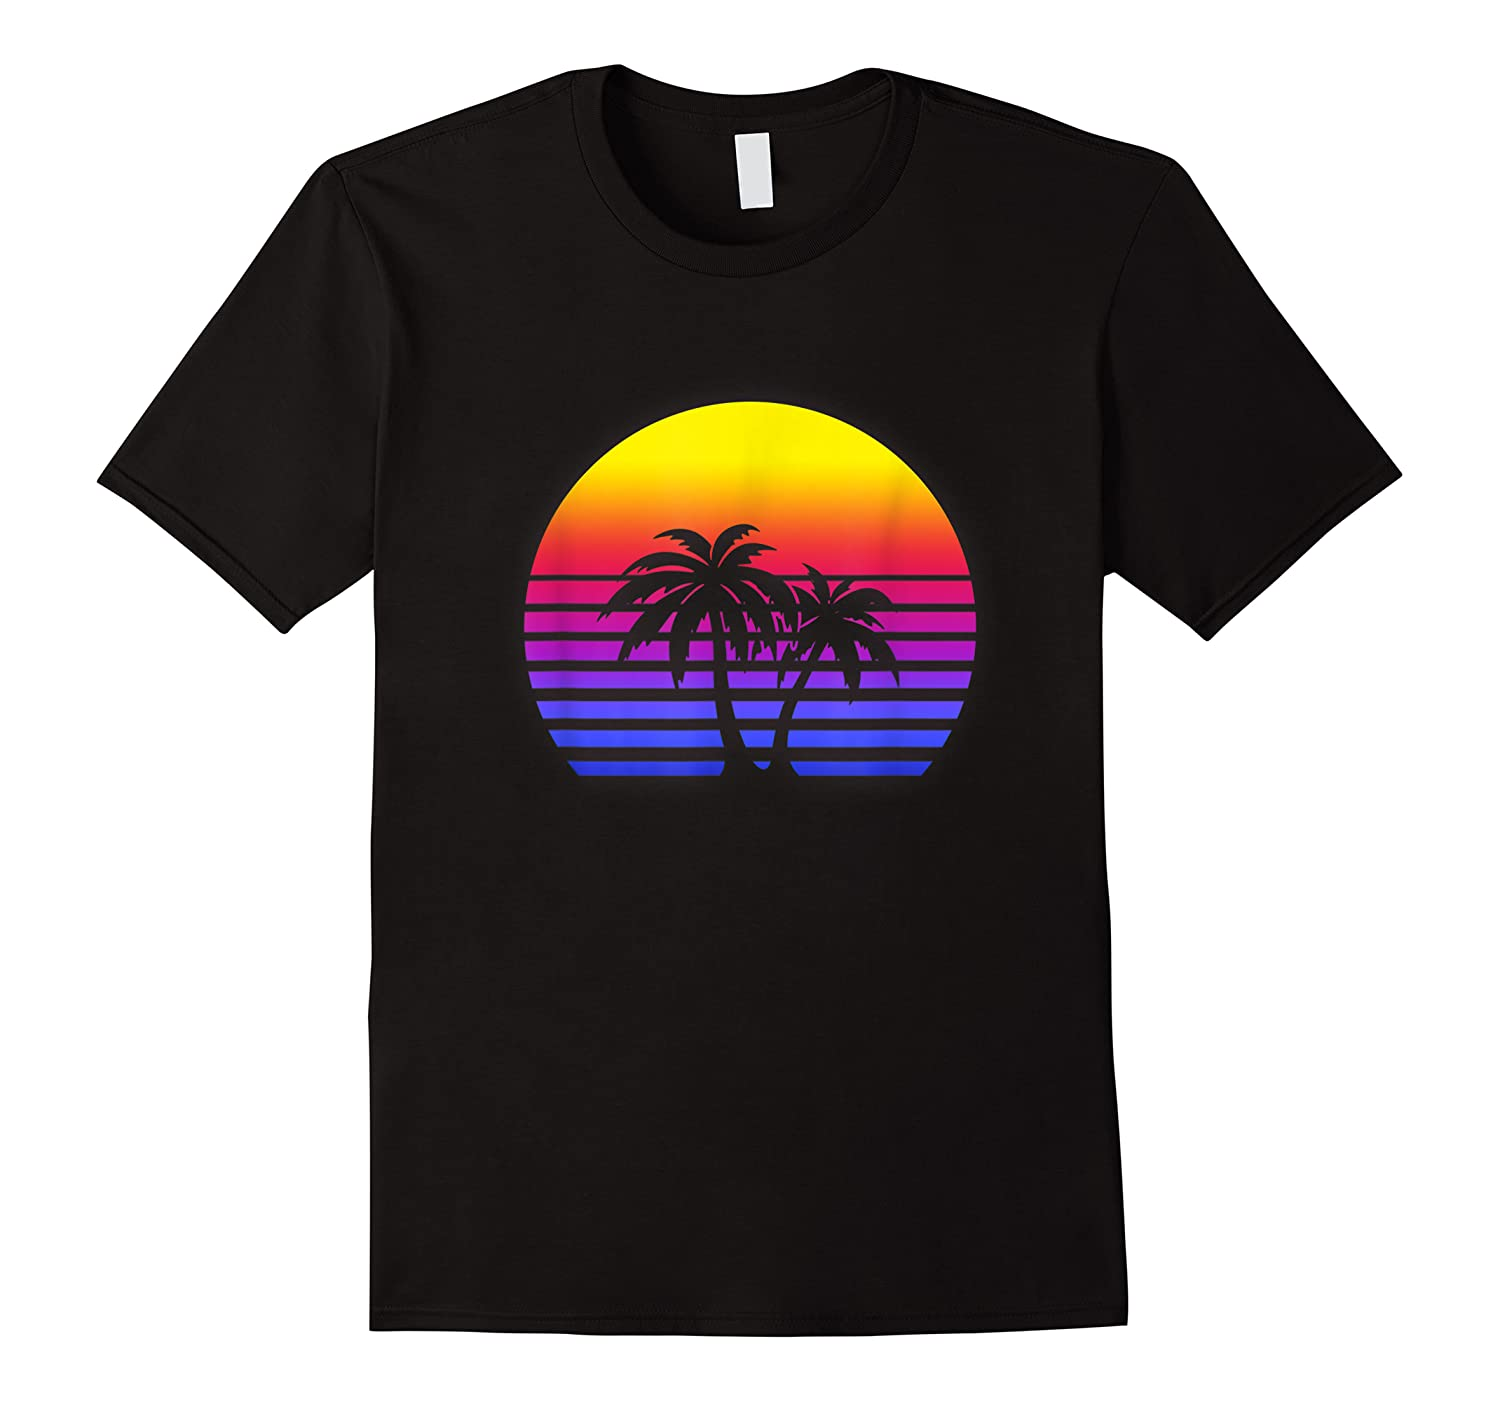 Synthwave Sun Palm Tree 80s Retrowave Aesthetic Outrun Shirts